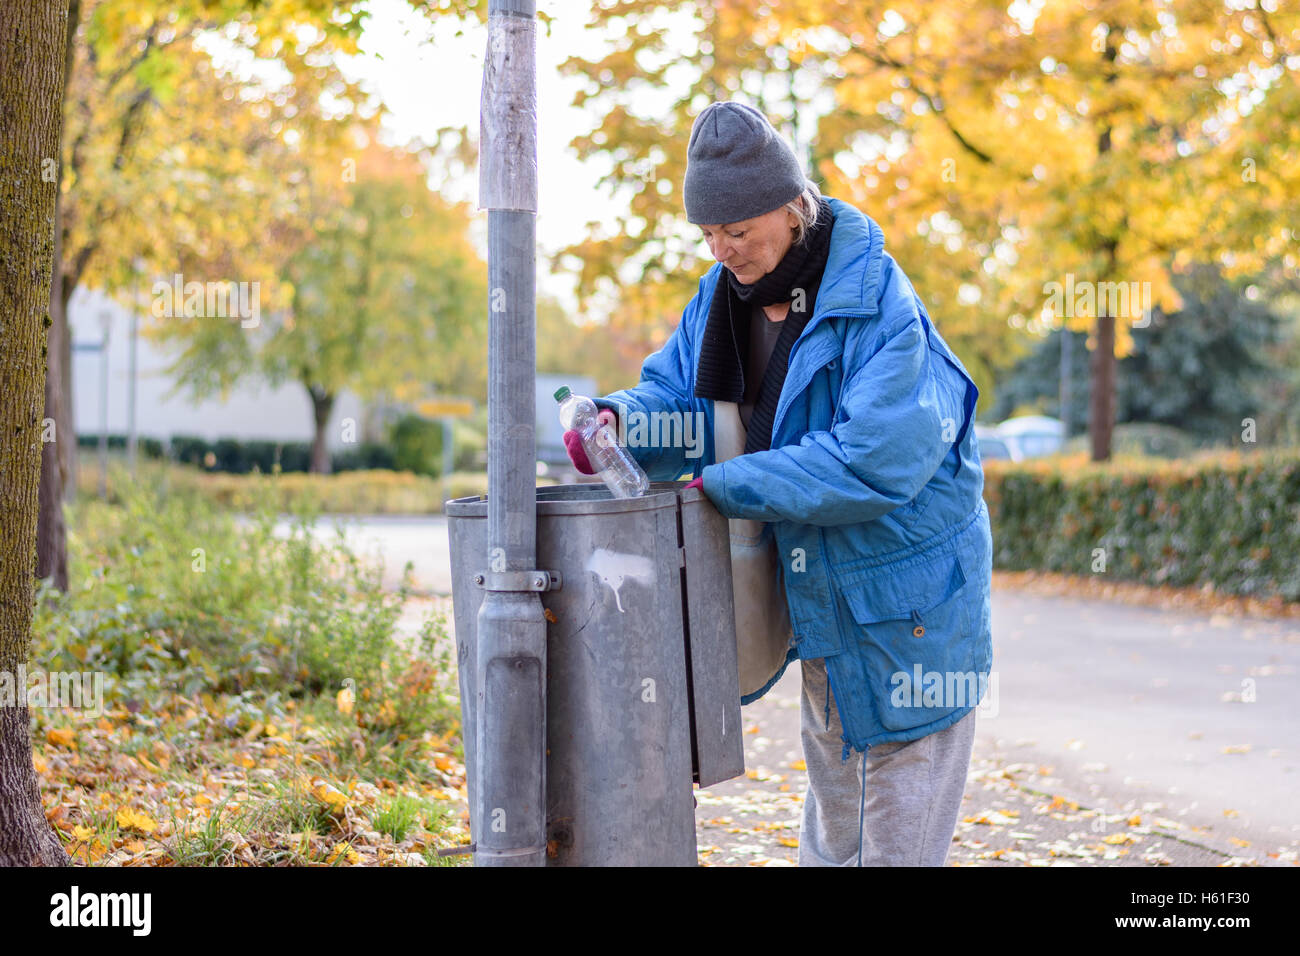 Indigent senior woman scrounging through a bin for food on an urban autumn street in a concept of homelessness and - Stock Image